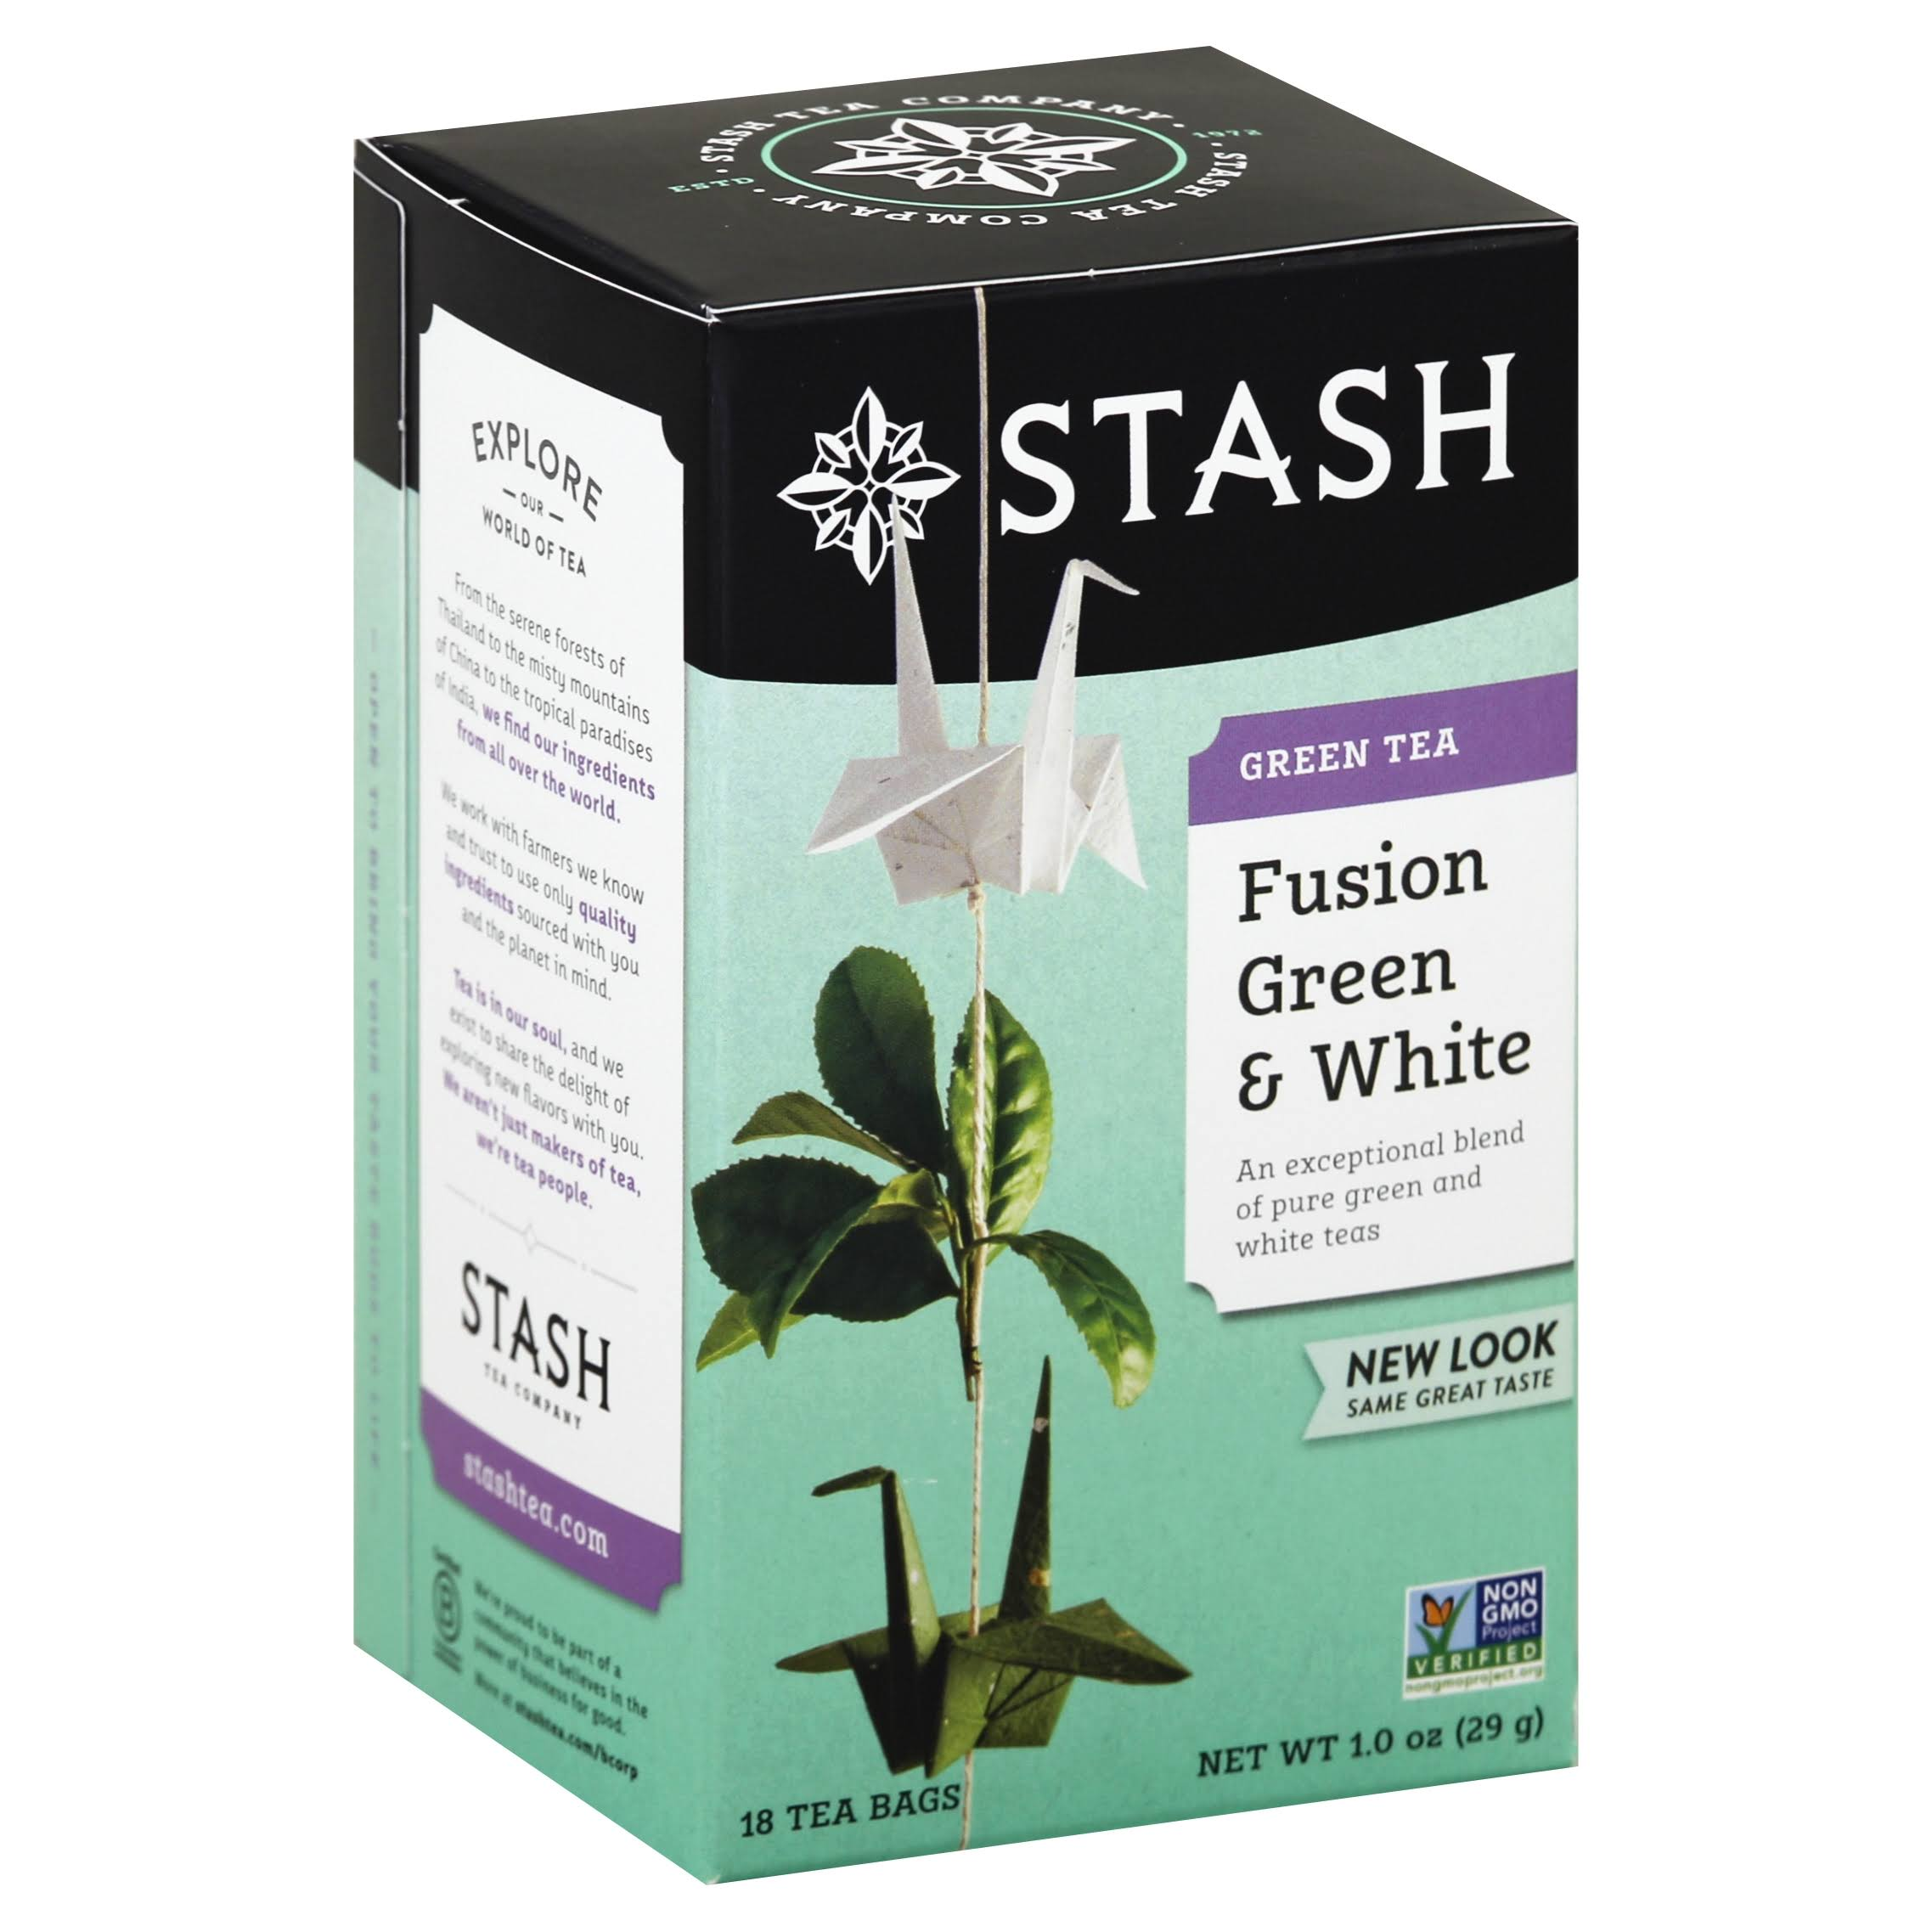 Stash Green Tea, Fusion Green & White, Bags - 18 tea bags, 1 oz